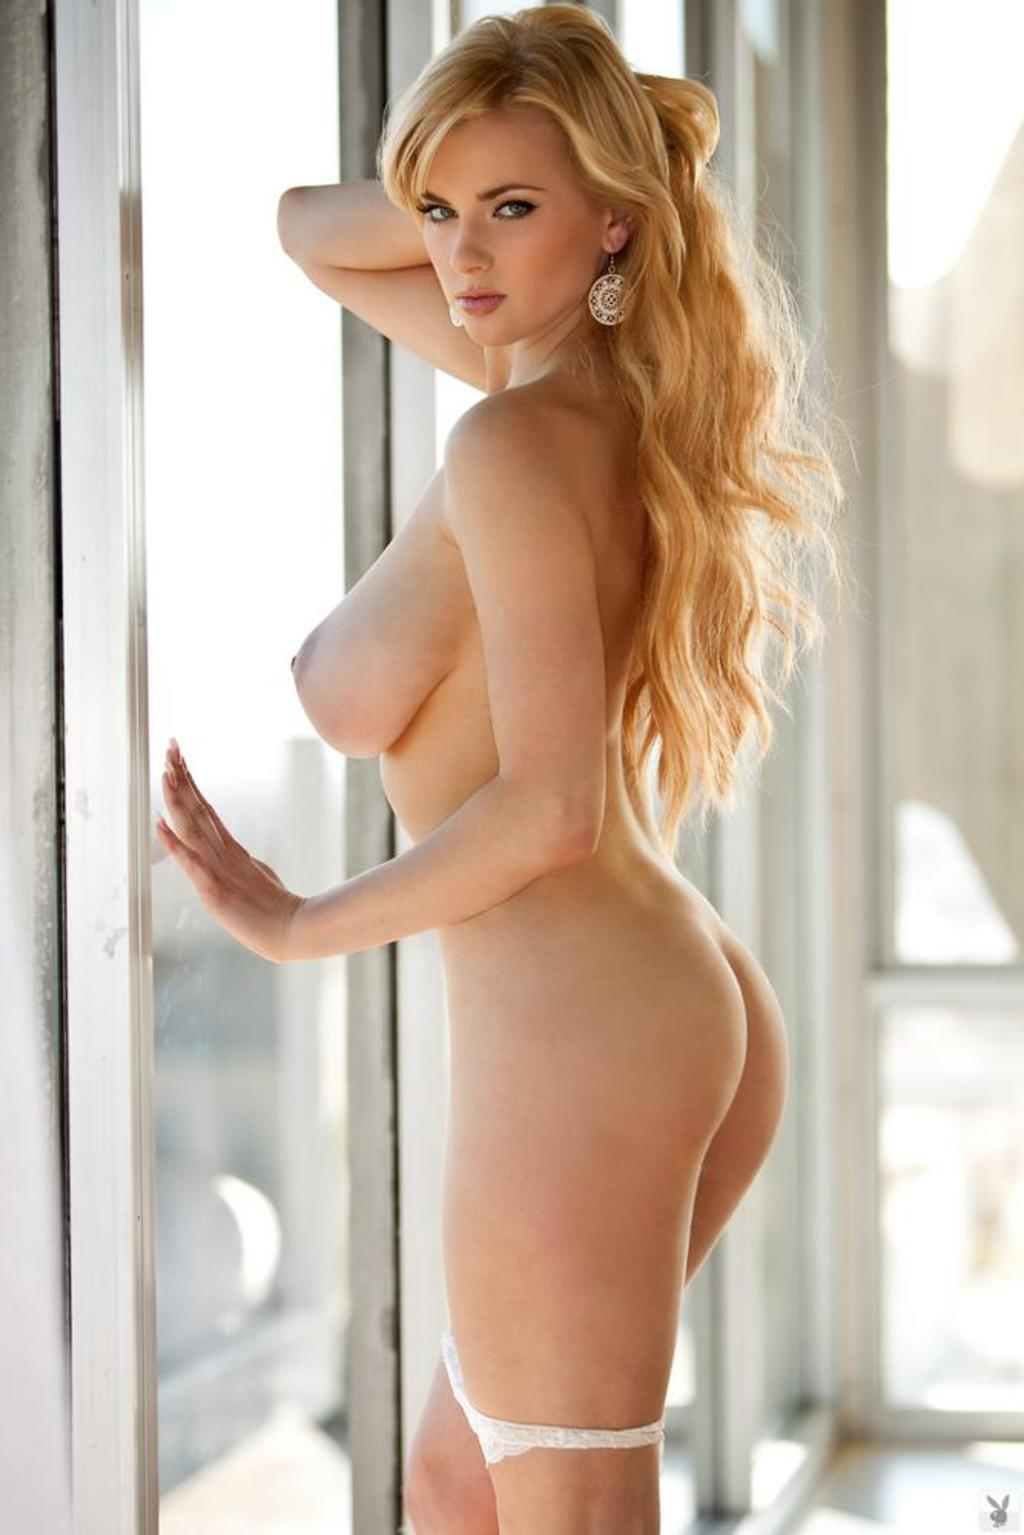 Busty Naked Woman 88